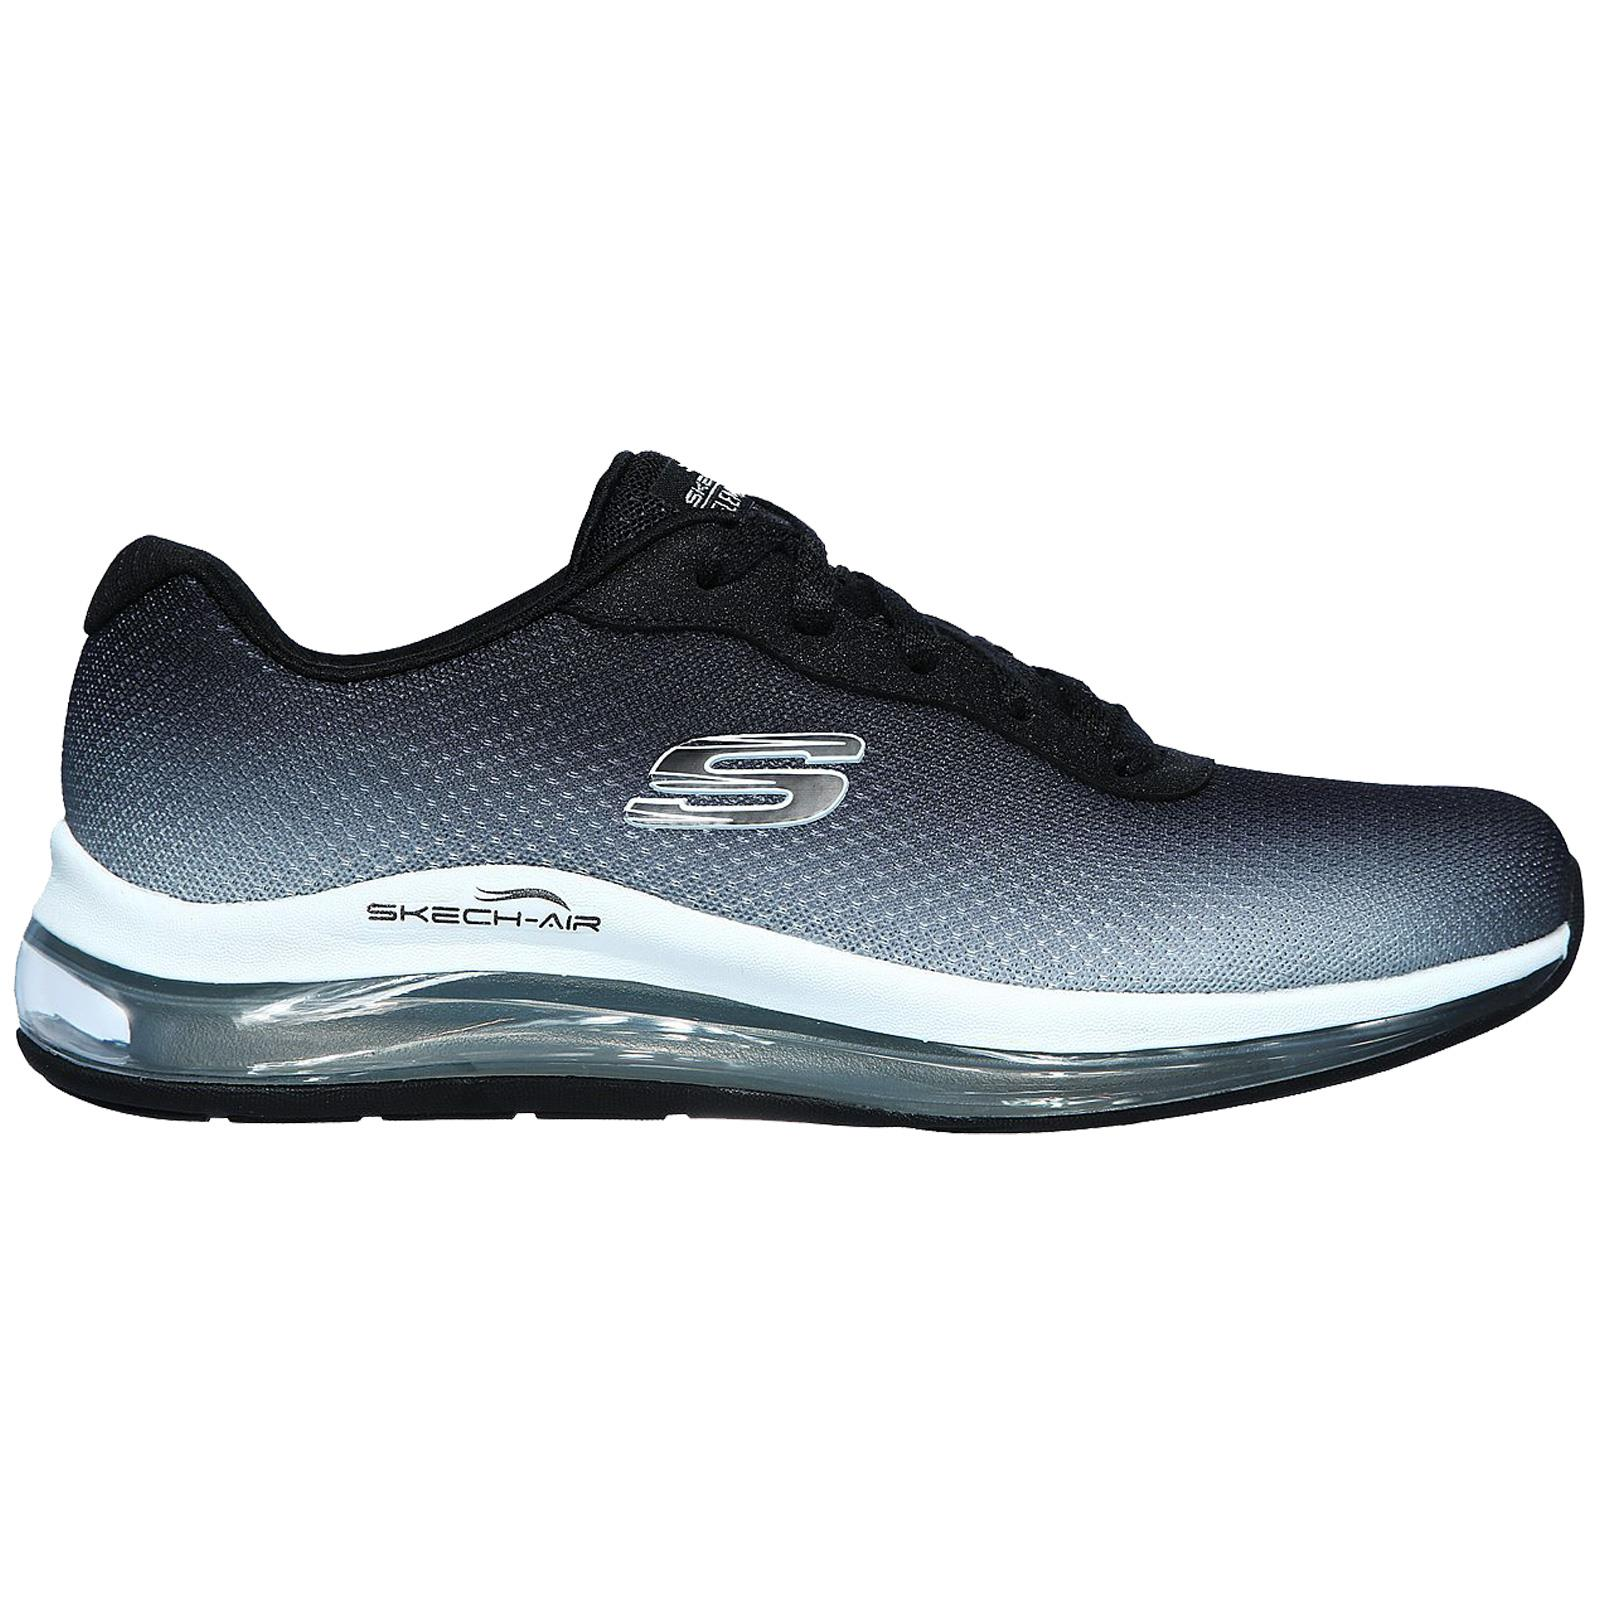 Skechers-Mujer-Skech-Air-Element-2-0-Zapatillas-Blanco-y-Negro miniatura 6